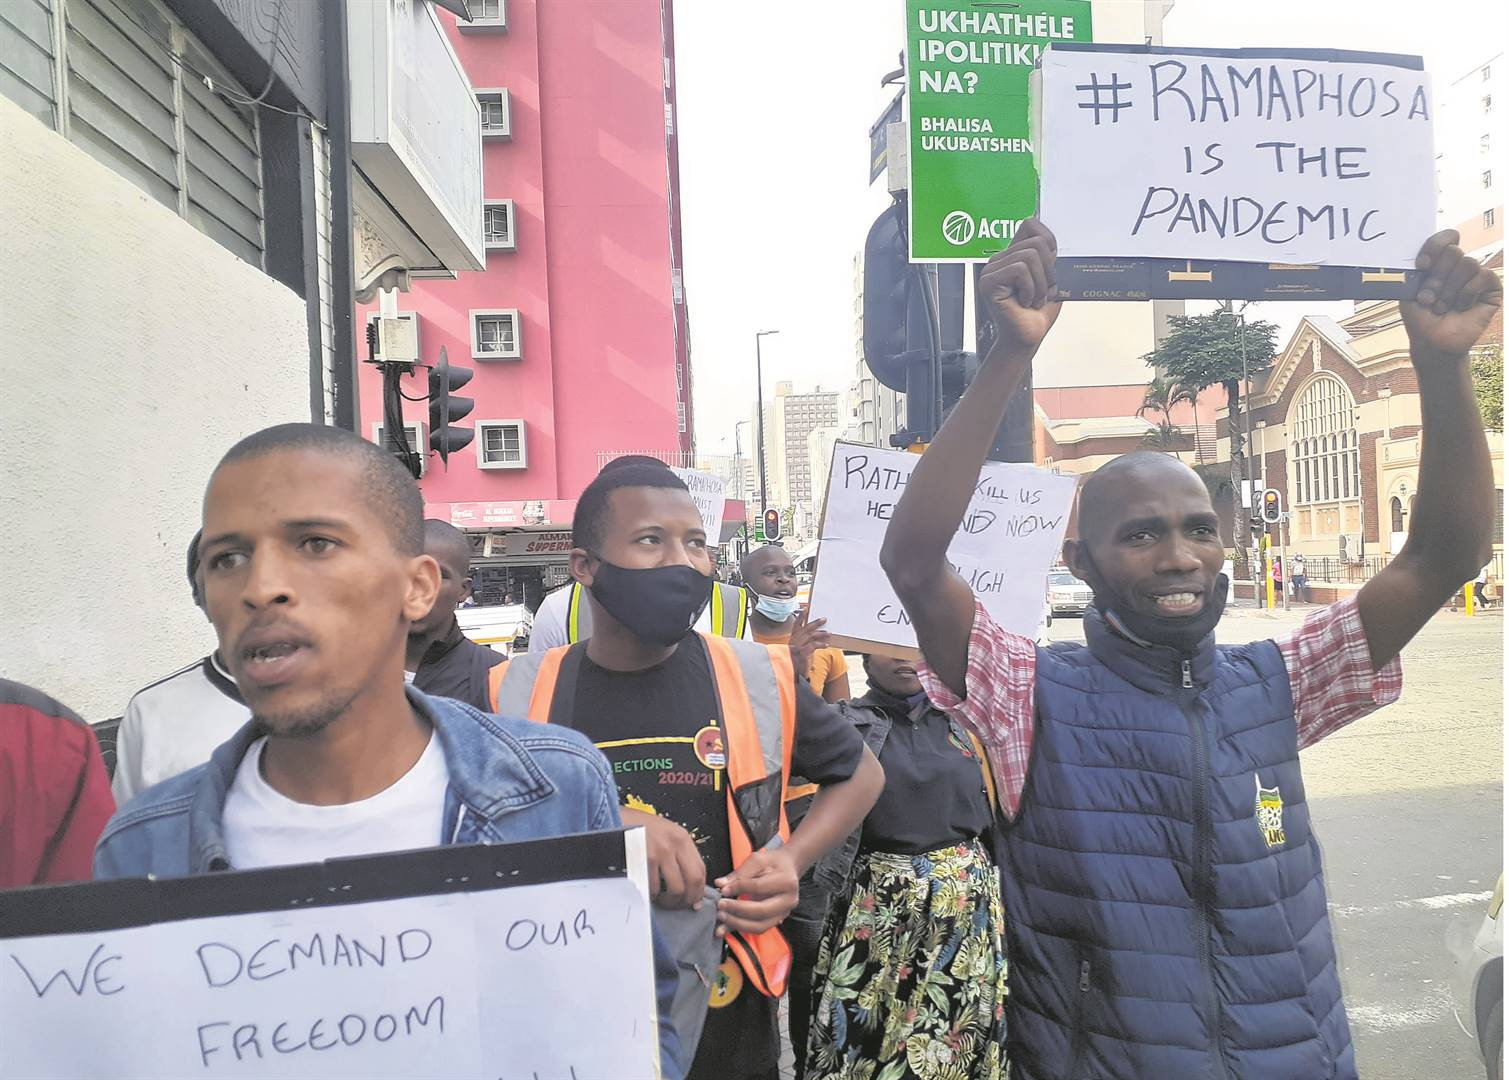 Pro-Zuma protesters in Durban were clear in their disdain of President Cyril Ramaphosa.